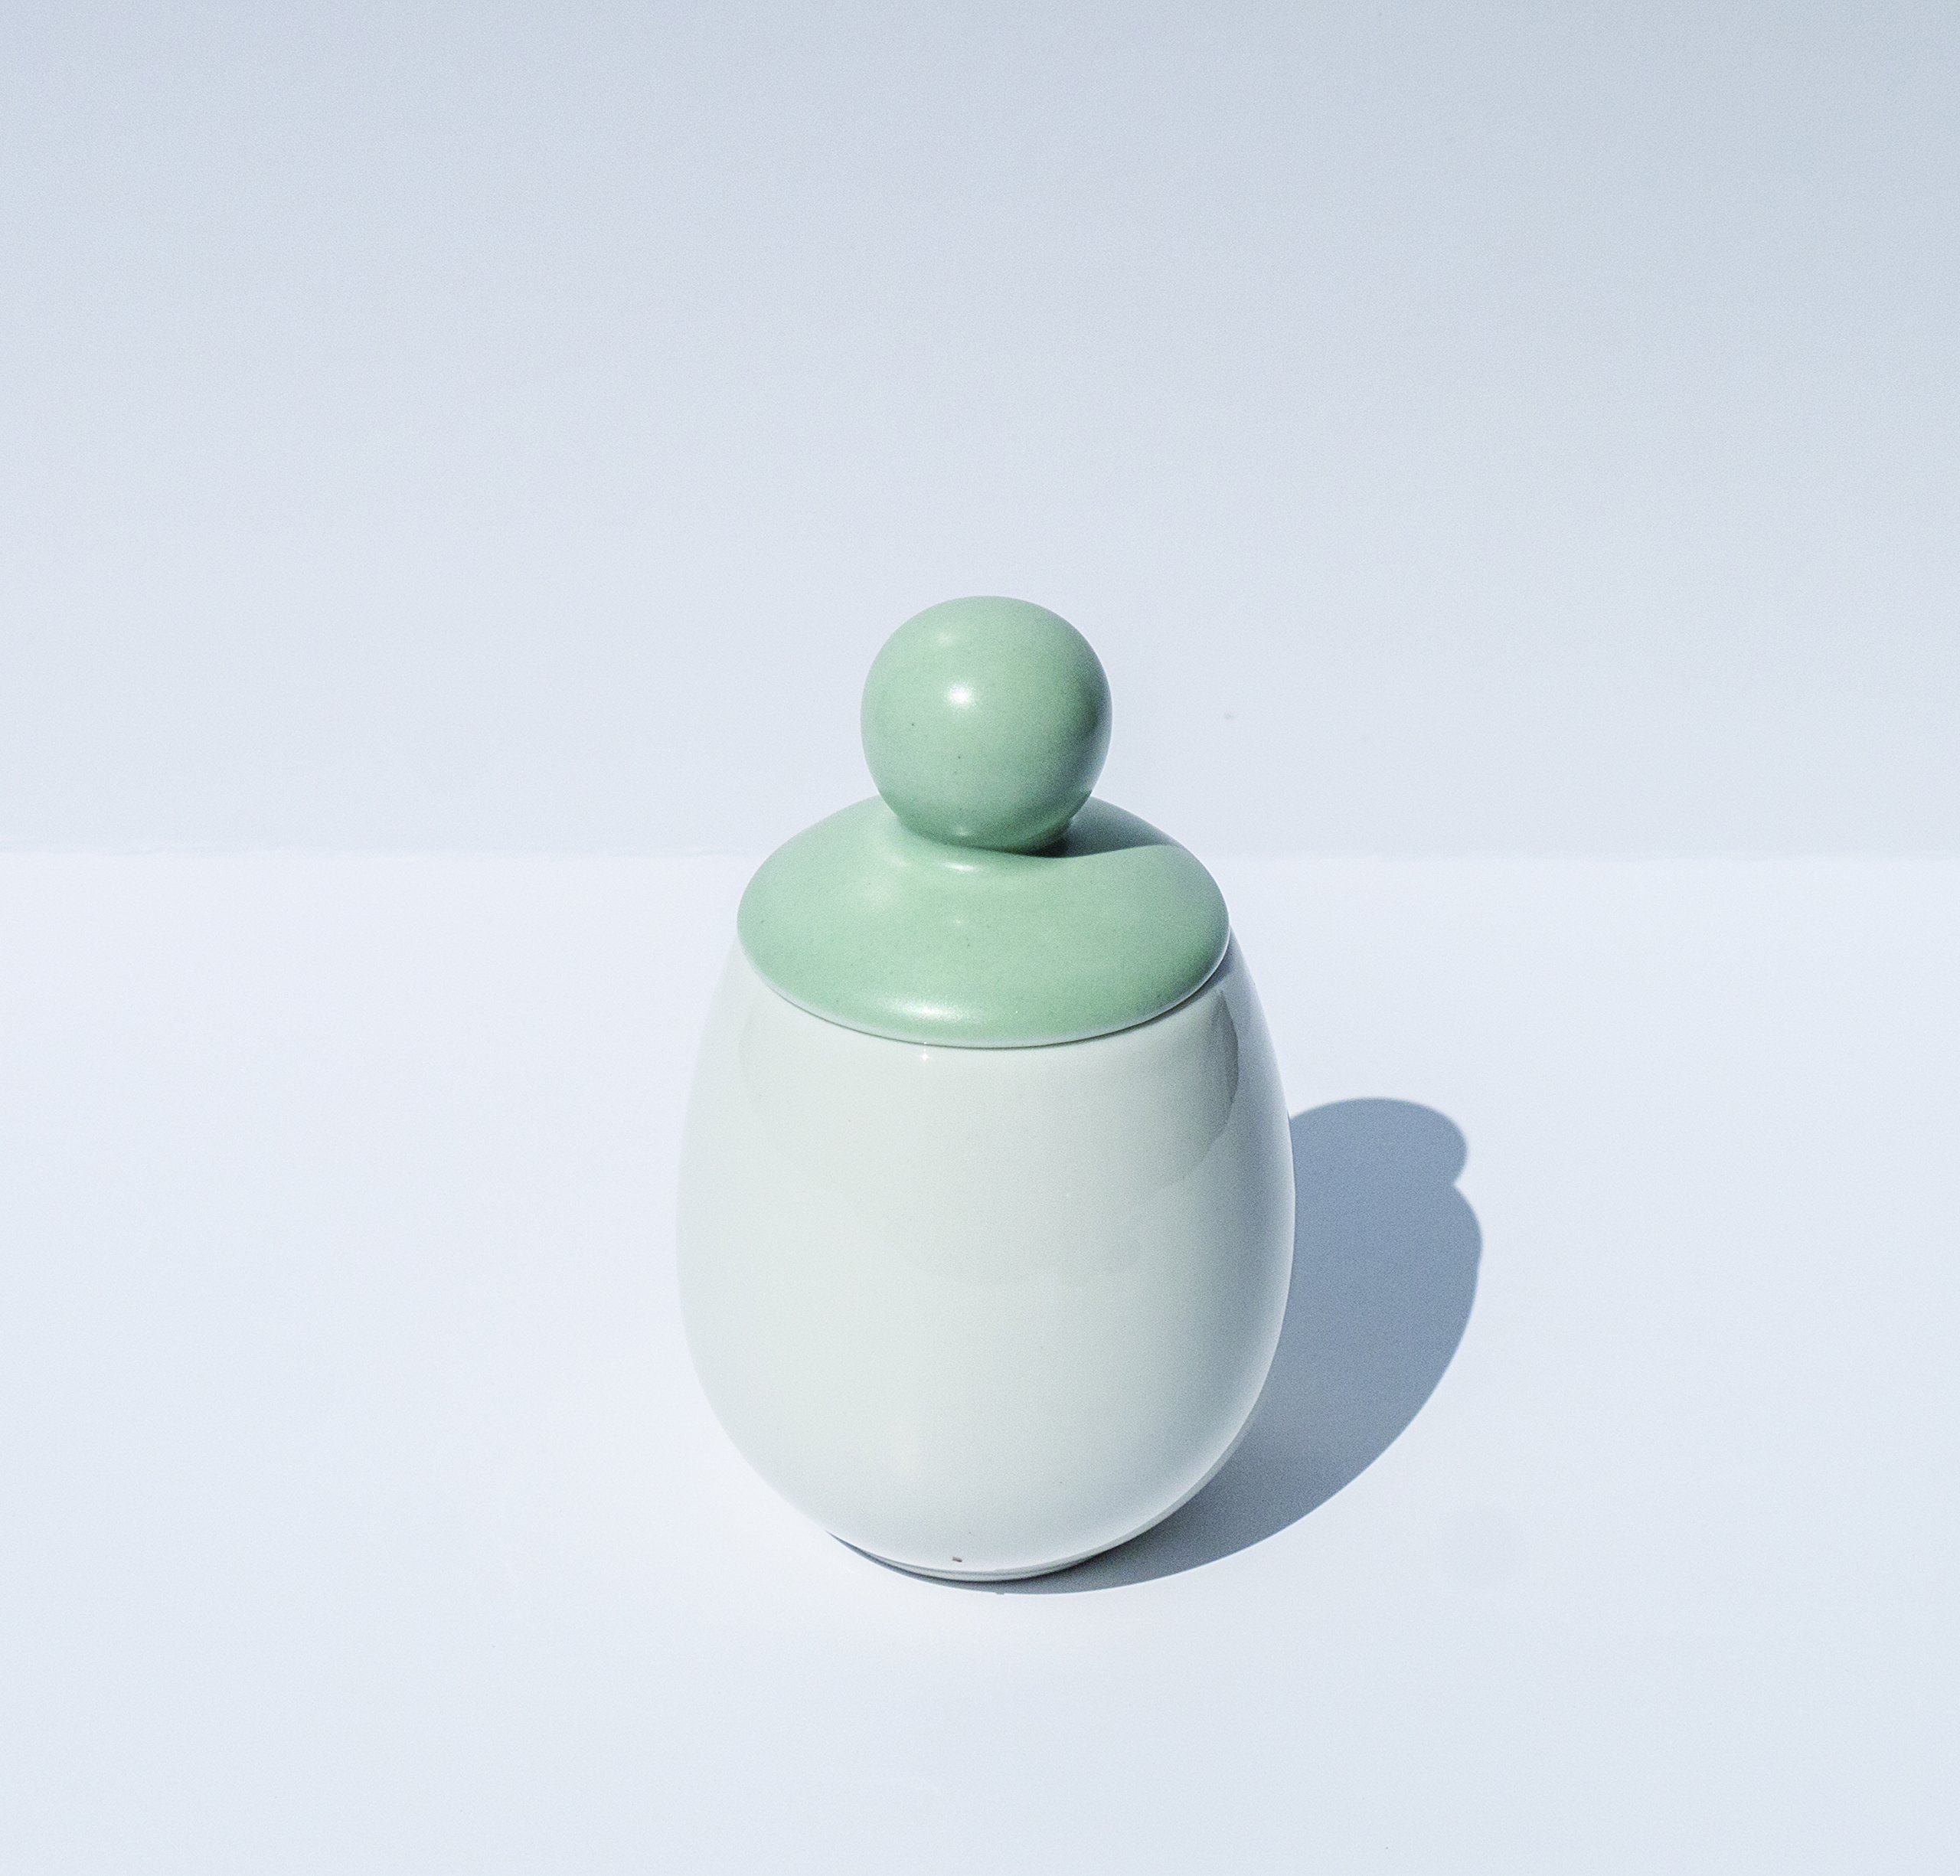 AggCoddler - Porcelain & Silicone Egg Cooker - Easily Cook Eggs with Toppings & Mix-Ins - Microwave & Dishwasher Safe - Steam, Poach, Boil Eggs - Displays Well in Kitchen (Green - Gullvie)…